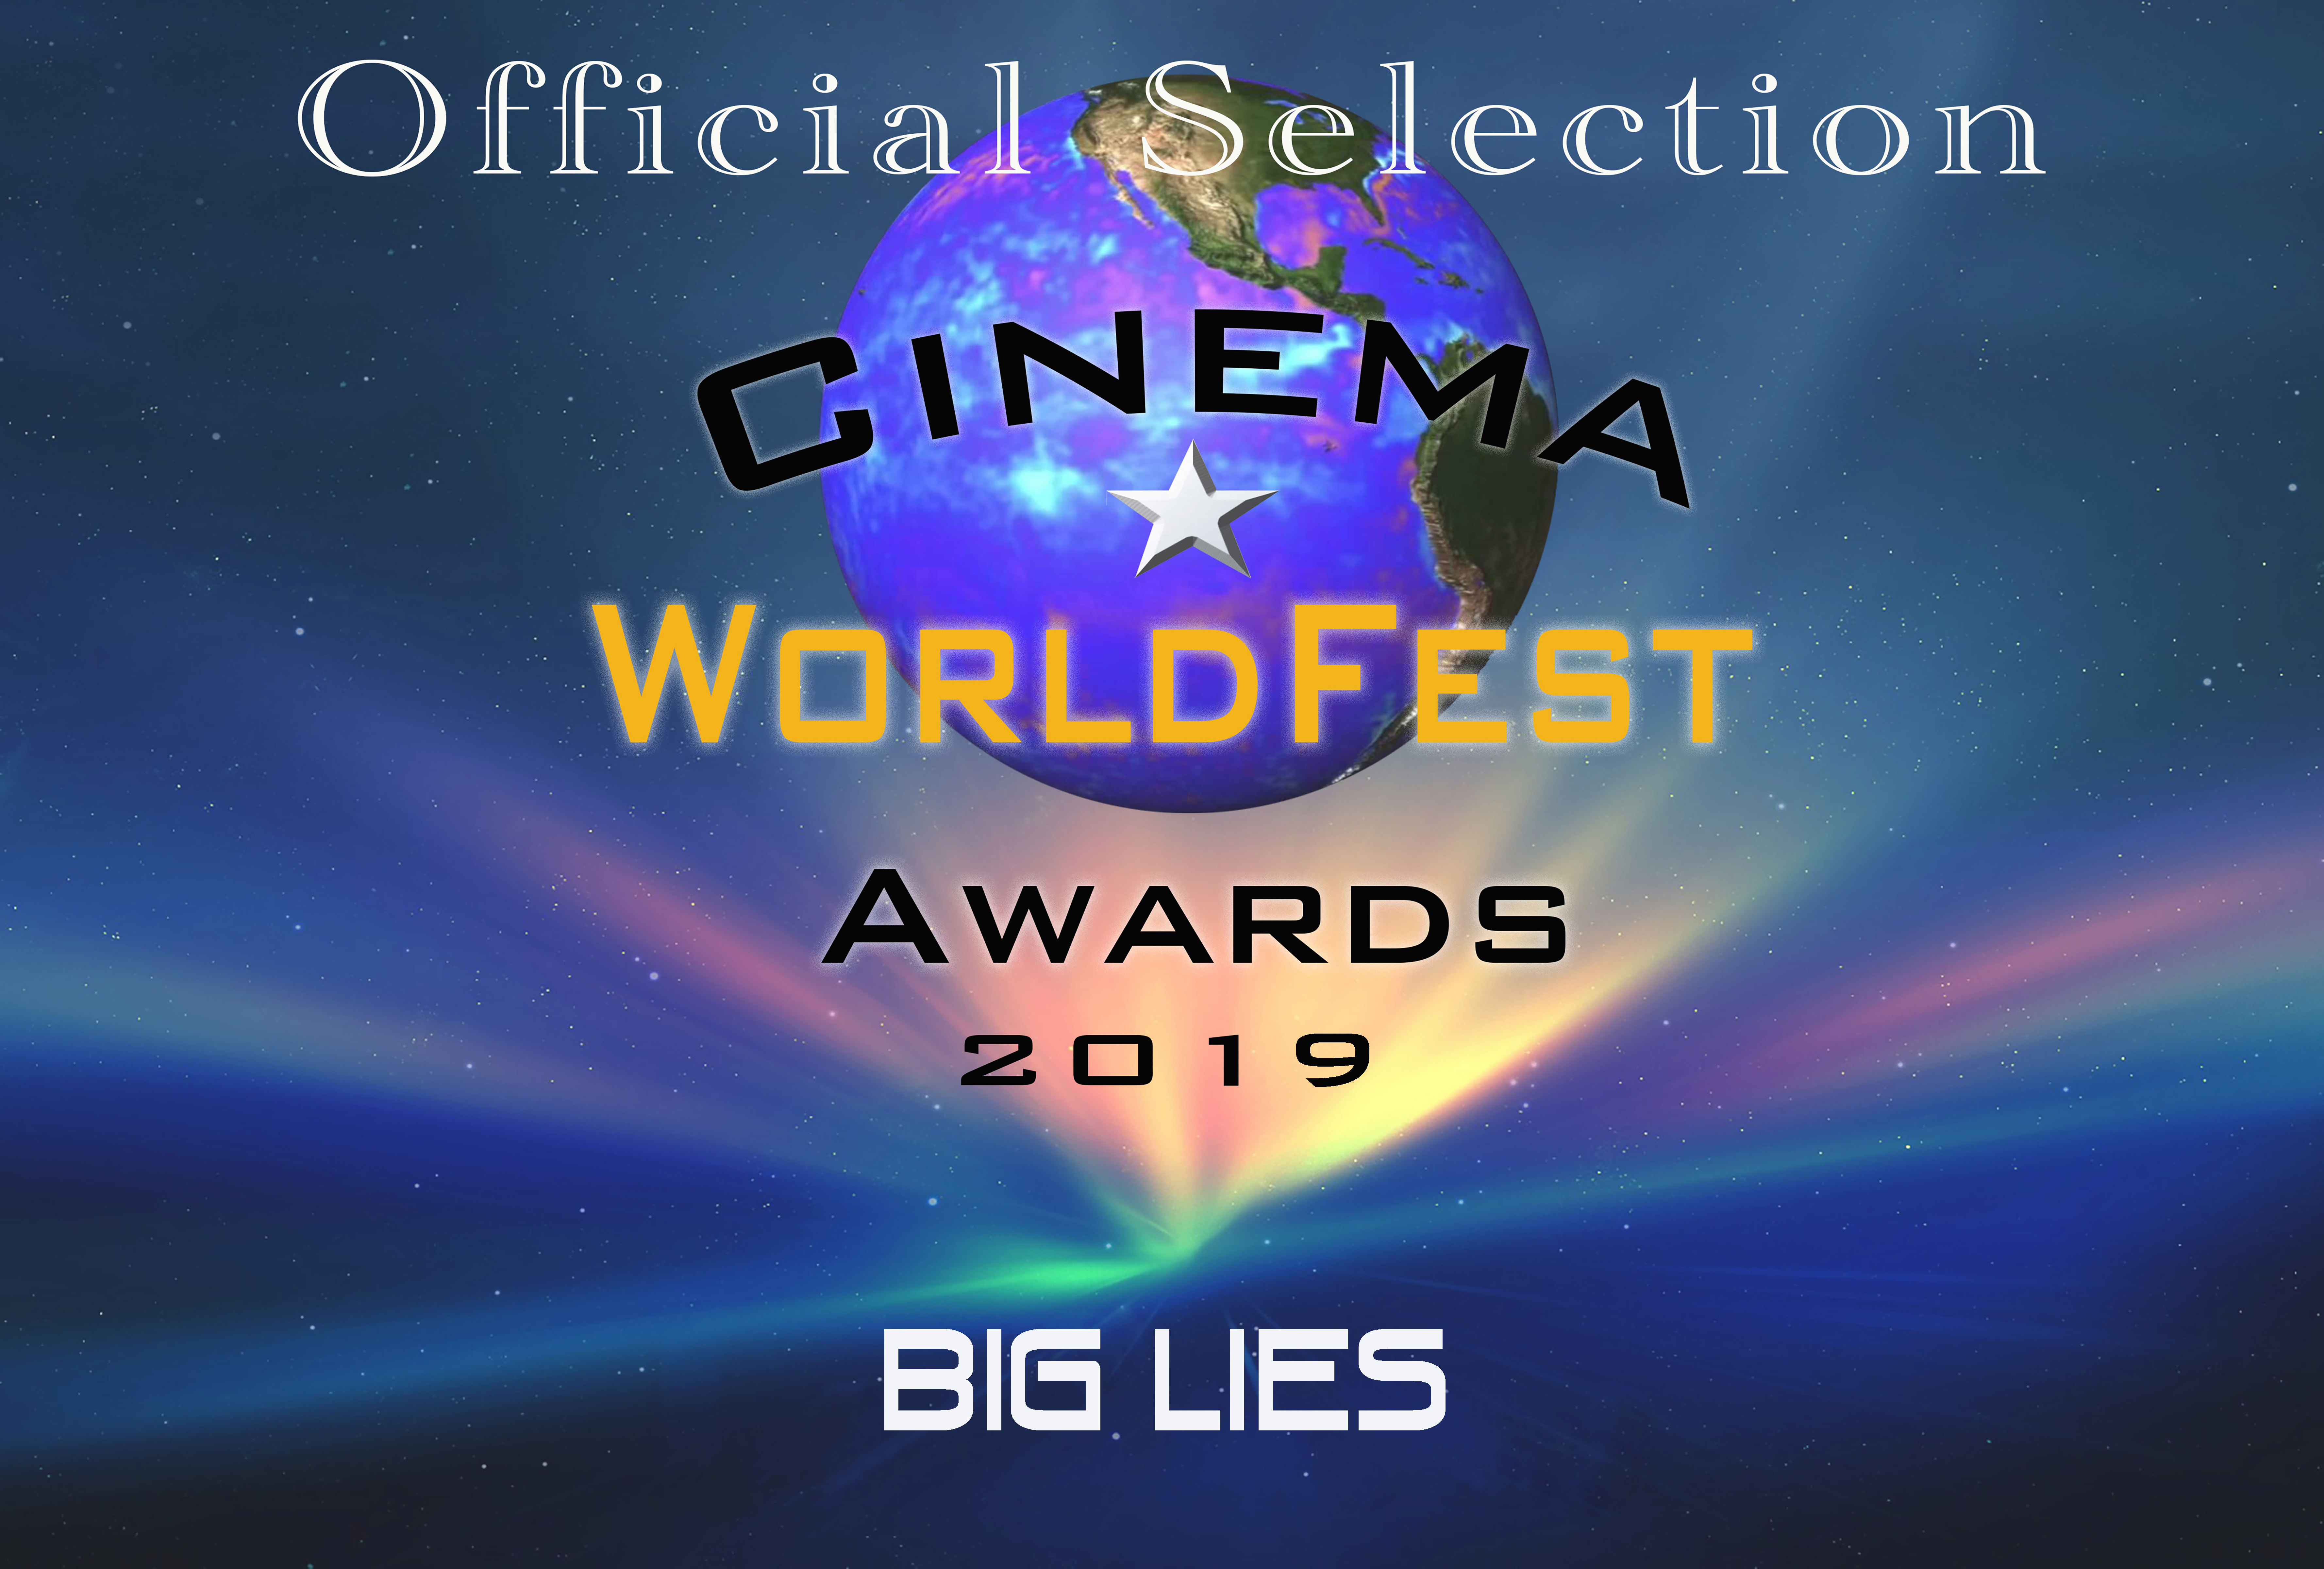 Official Selection Cinema WorldFest, 2019 Awards Big Lies